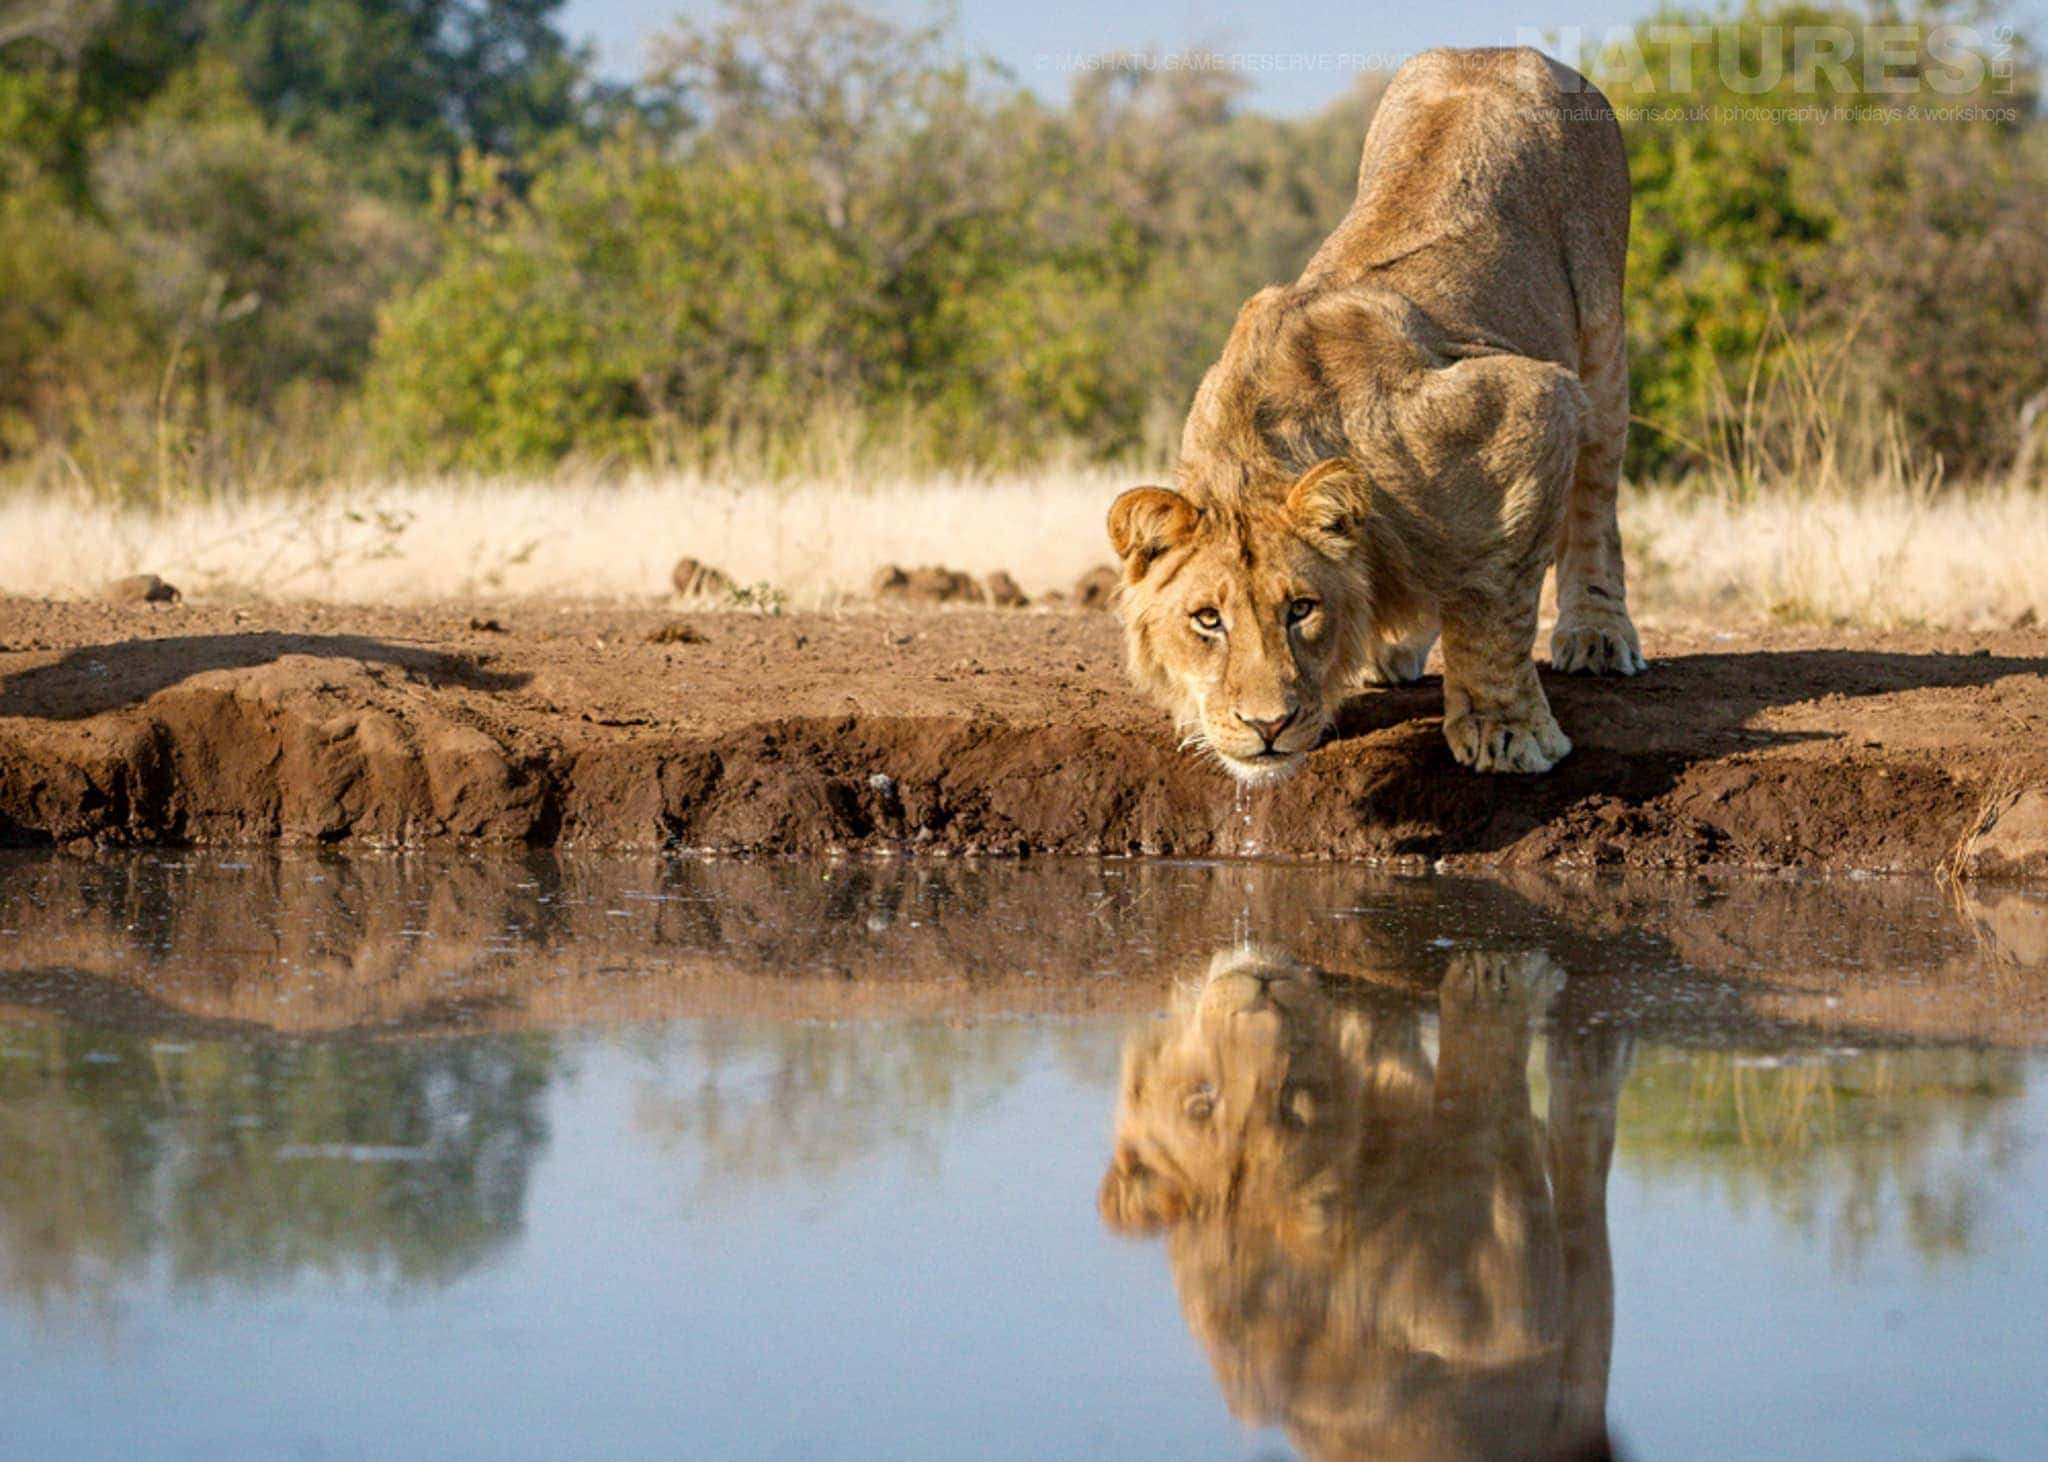 A lion drinks from one of the water holes - photographed at the locations used for the NaturesLens Mashatu, Land of the Giants Photography Holiday